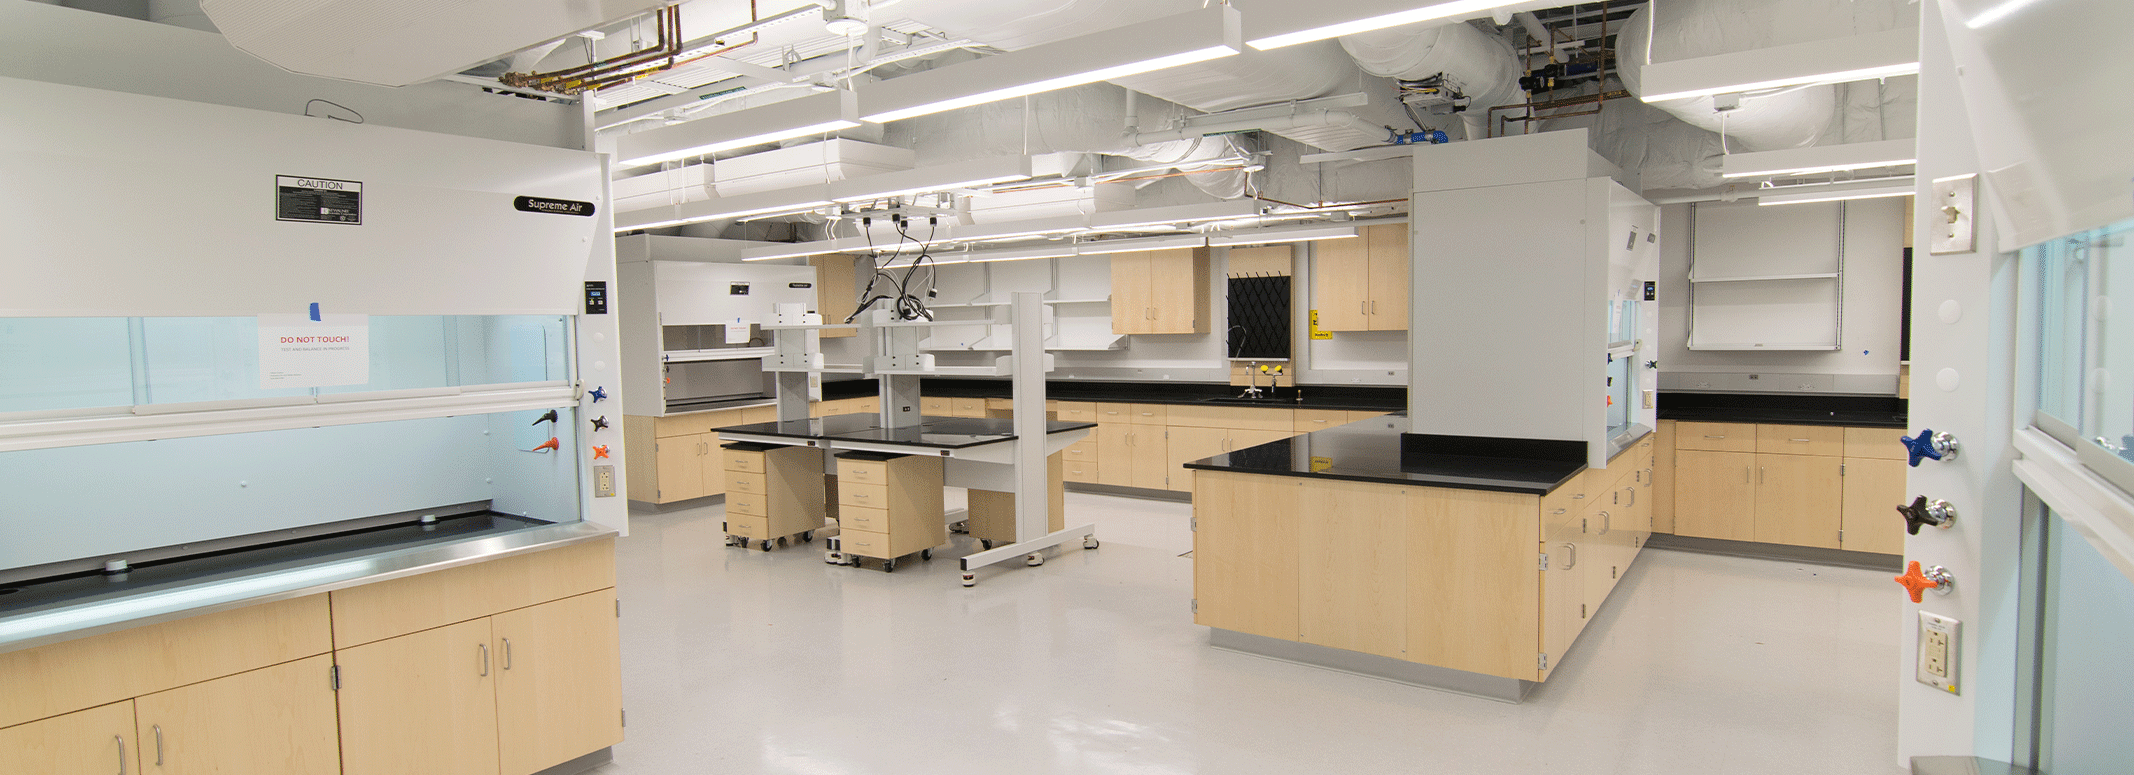 35 North Provides Project and Construction Management Services to RTI International's Herbert Building AMSI Lab Renovation